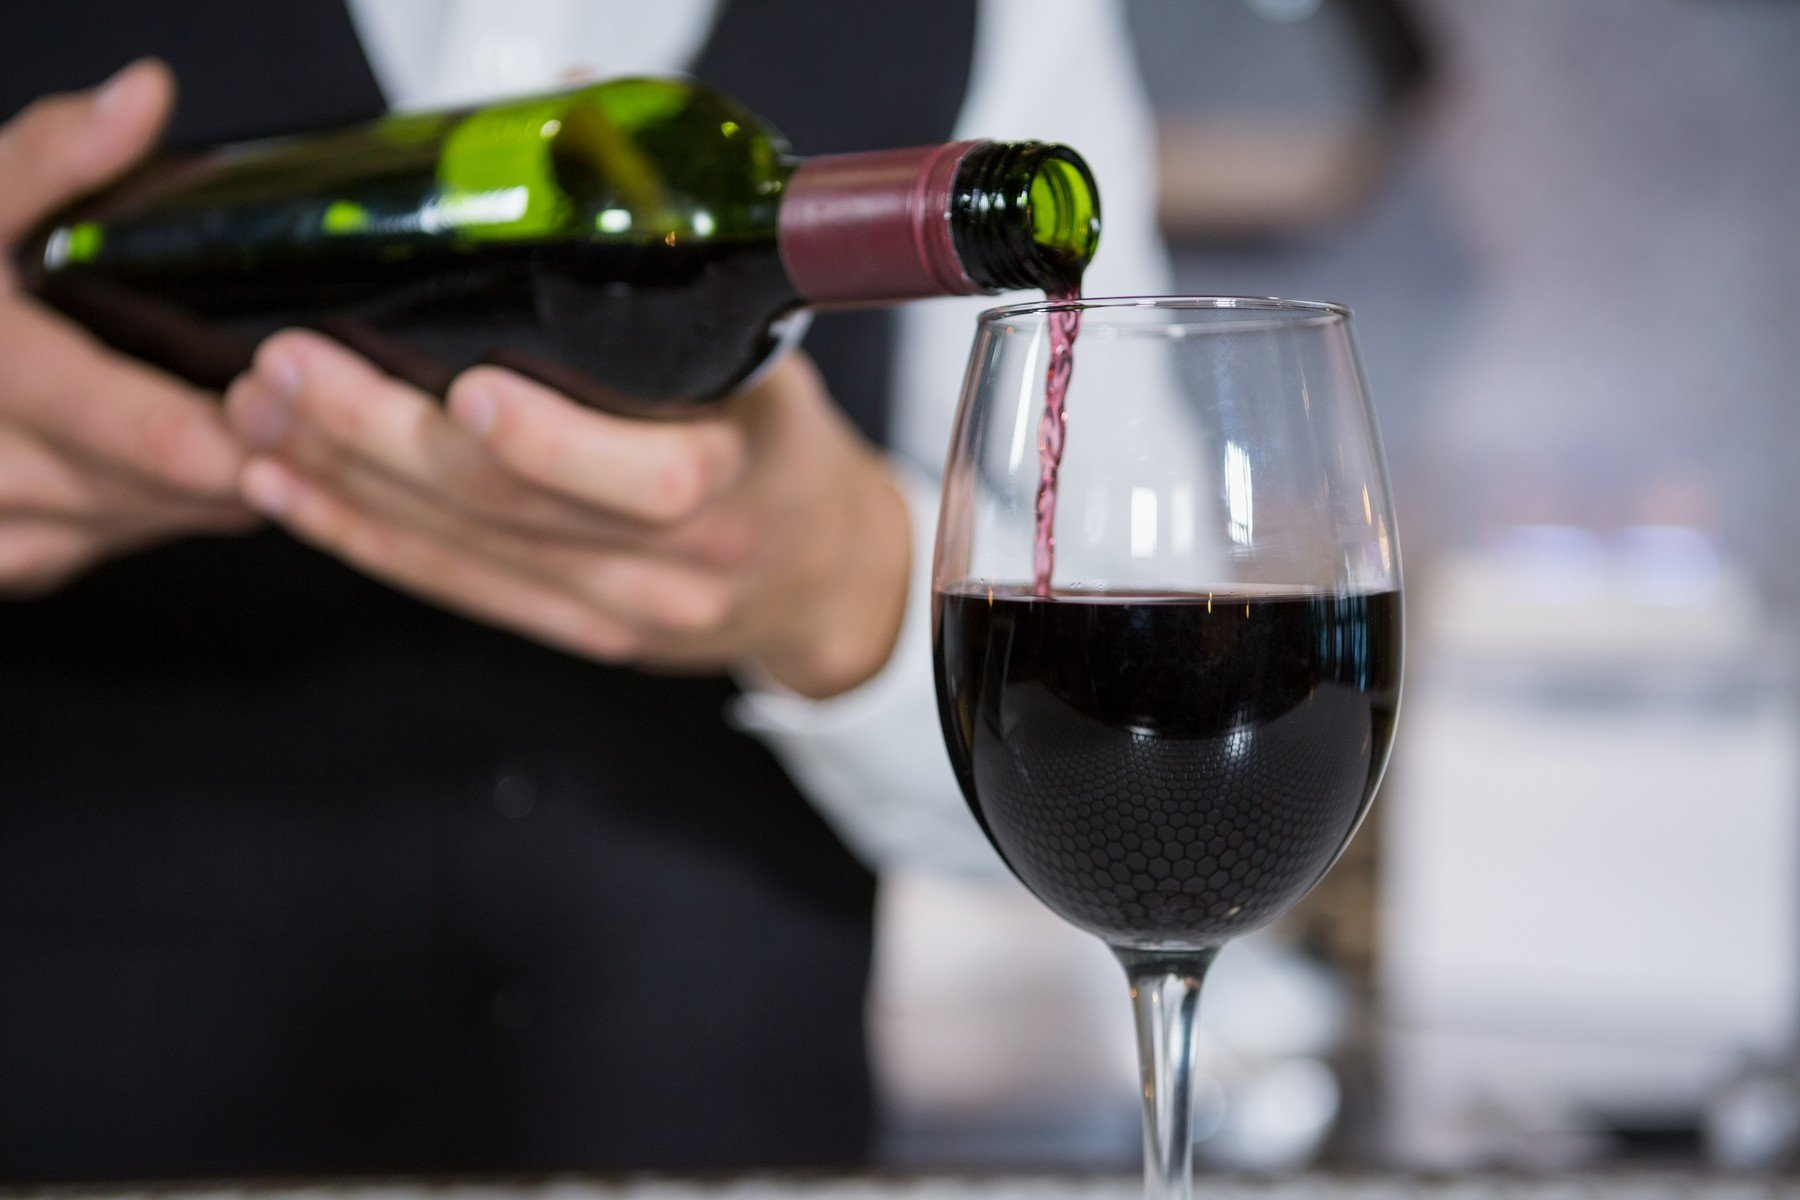 Mid section of bartender pouring red wine on glass in bar counter, Image: 309219027, License: Rights-managed, Restrictions: , Model Release: yes, Credit line: Profimedia, Wavebreak